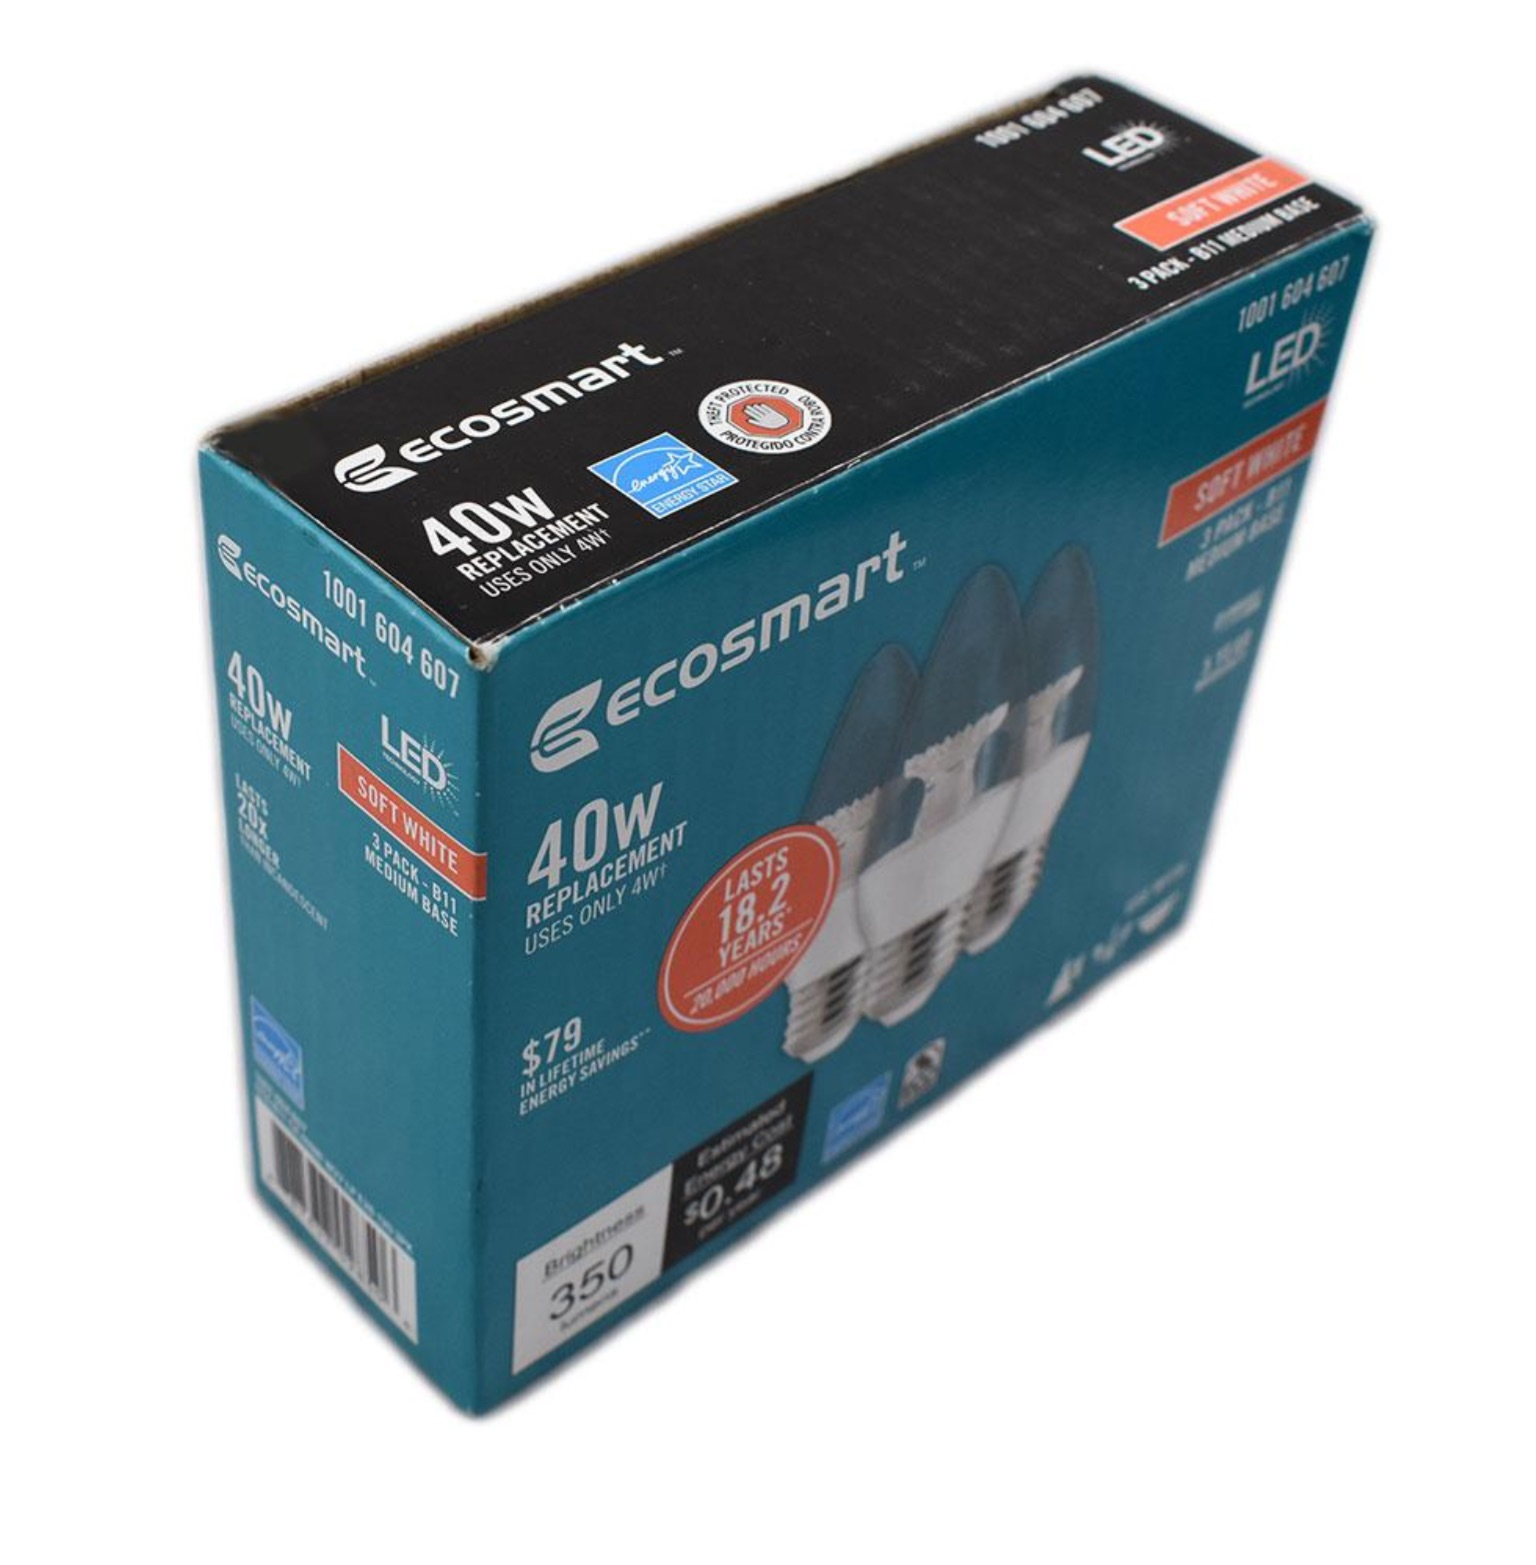 Ecosmart 40w Equivalent Soft White B11 Dimmable Filament: 48 Bulbs EcoSmart 40W Equivalent Soft White B11 Candelabra